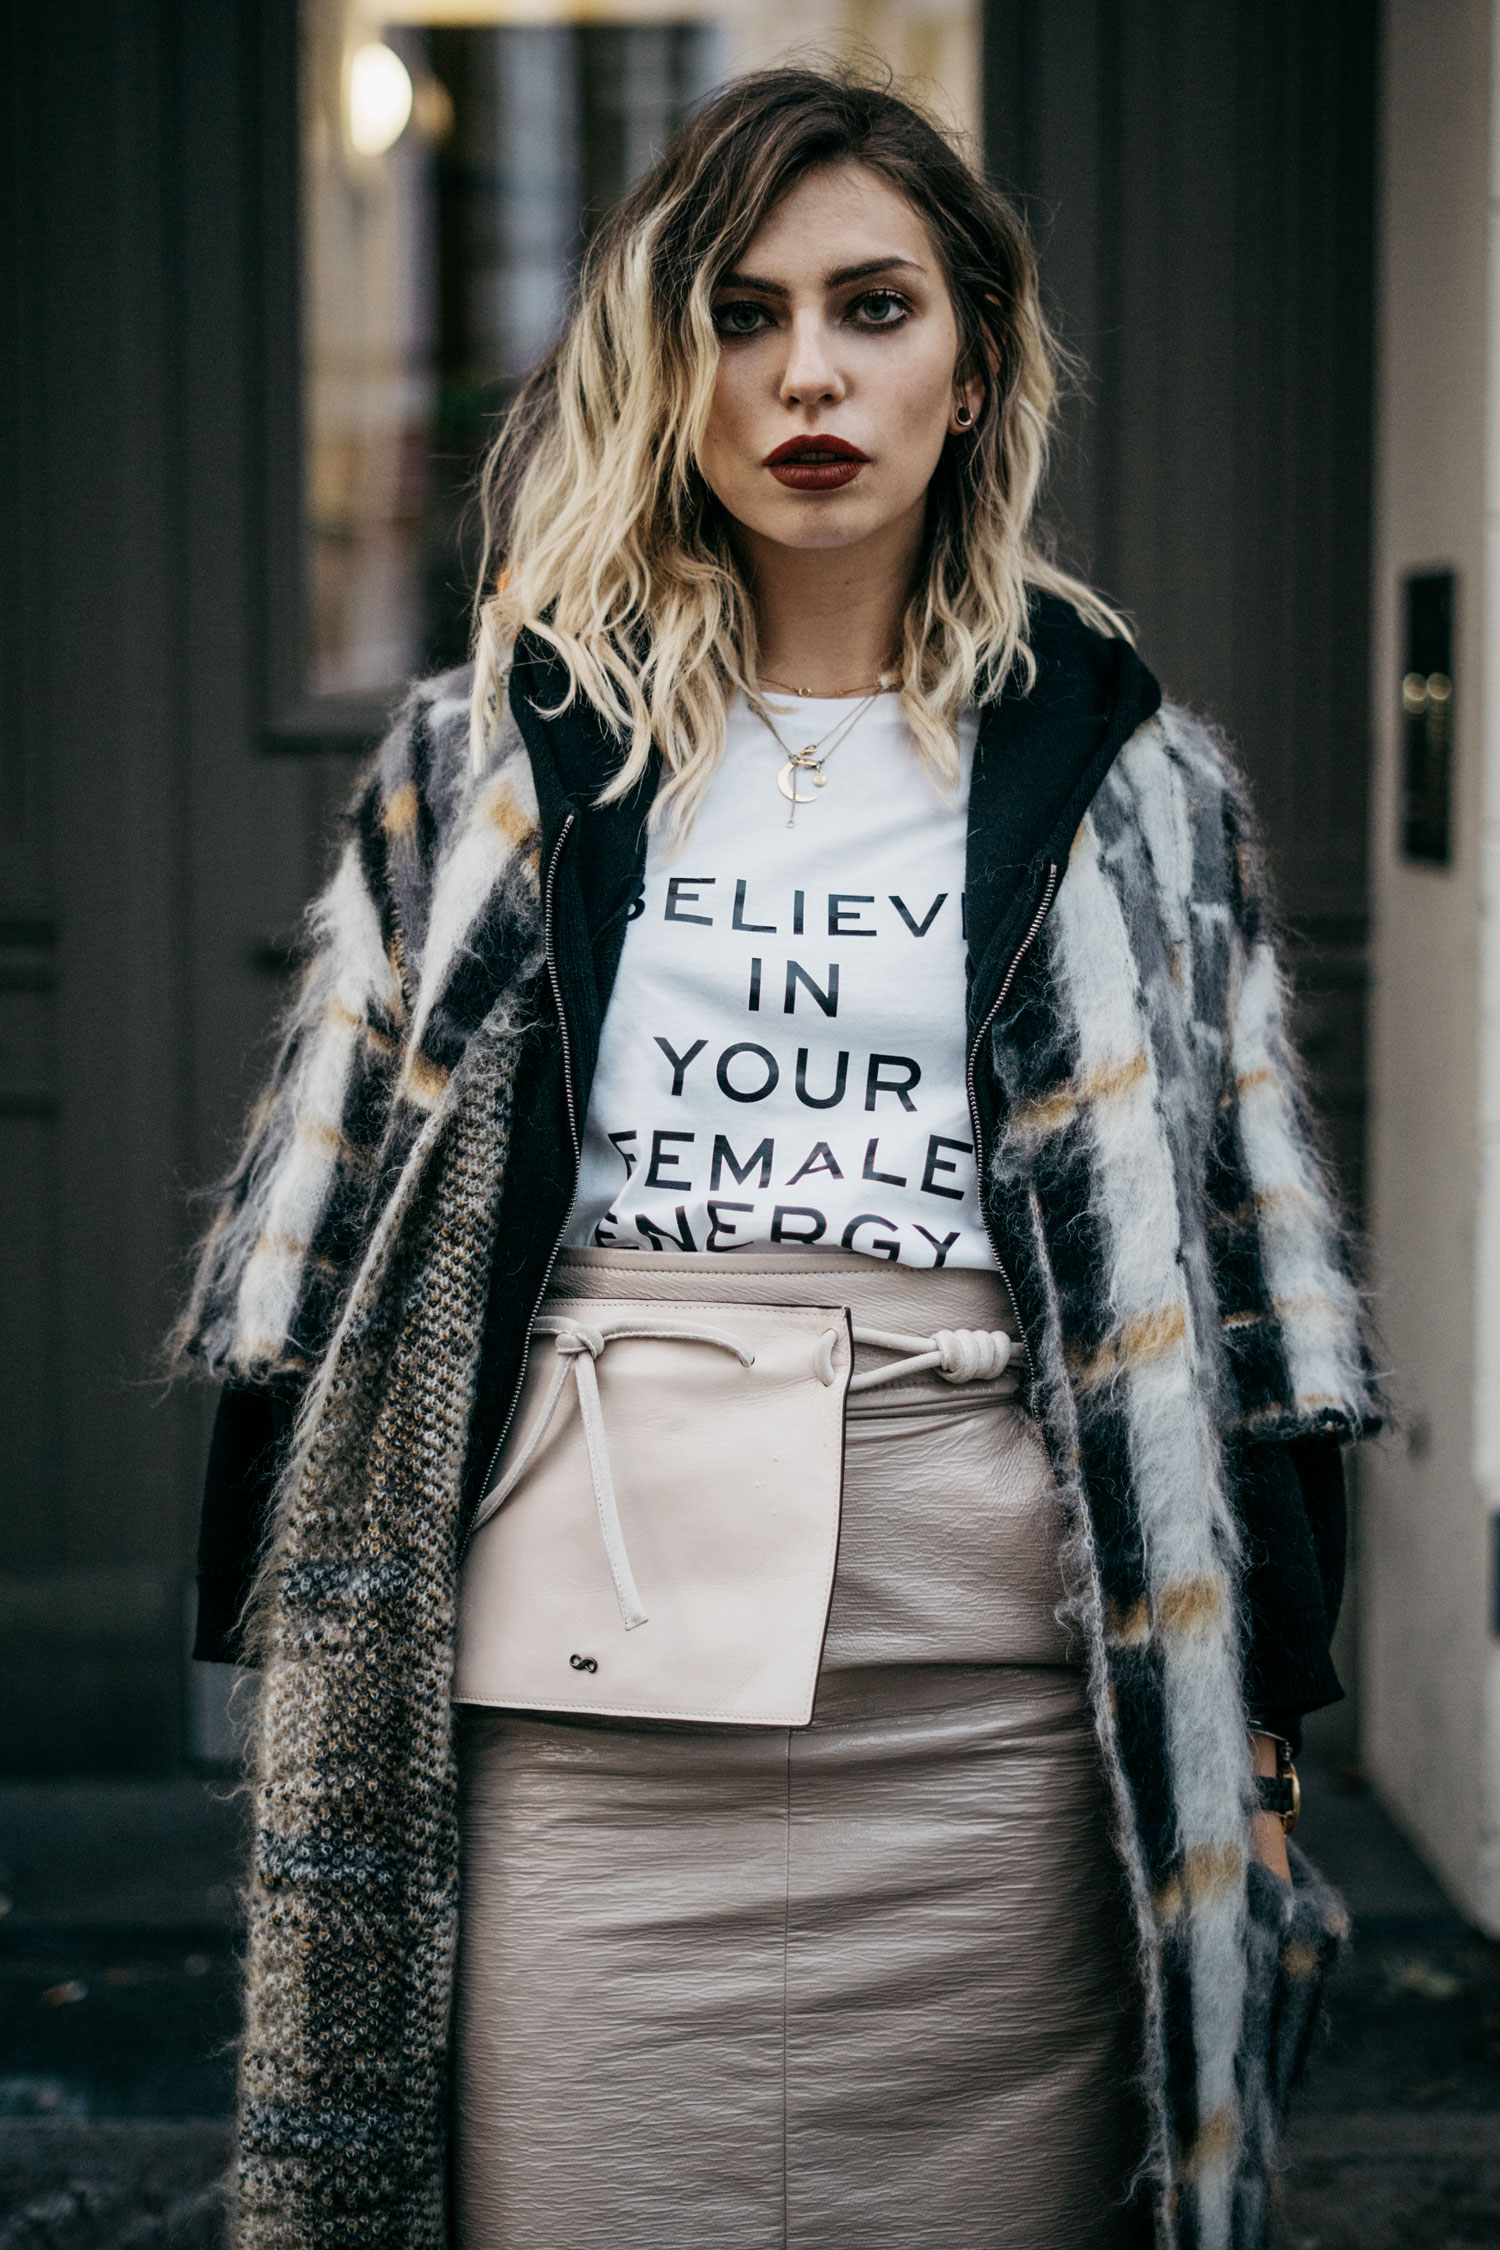 Street style outfit in Berlin | edgy, cool, feminine, winter | Dorothee Schumacher